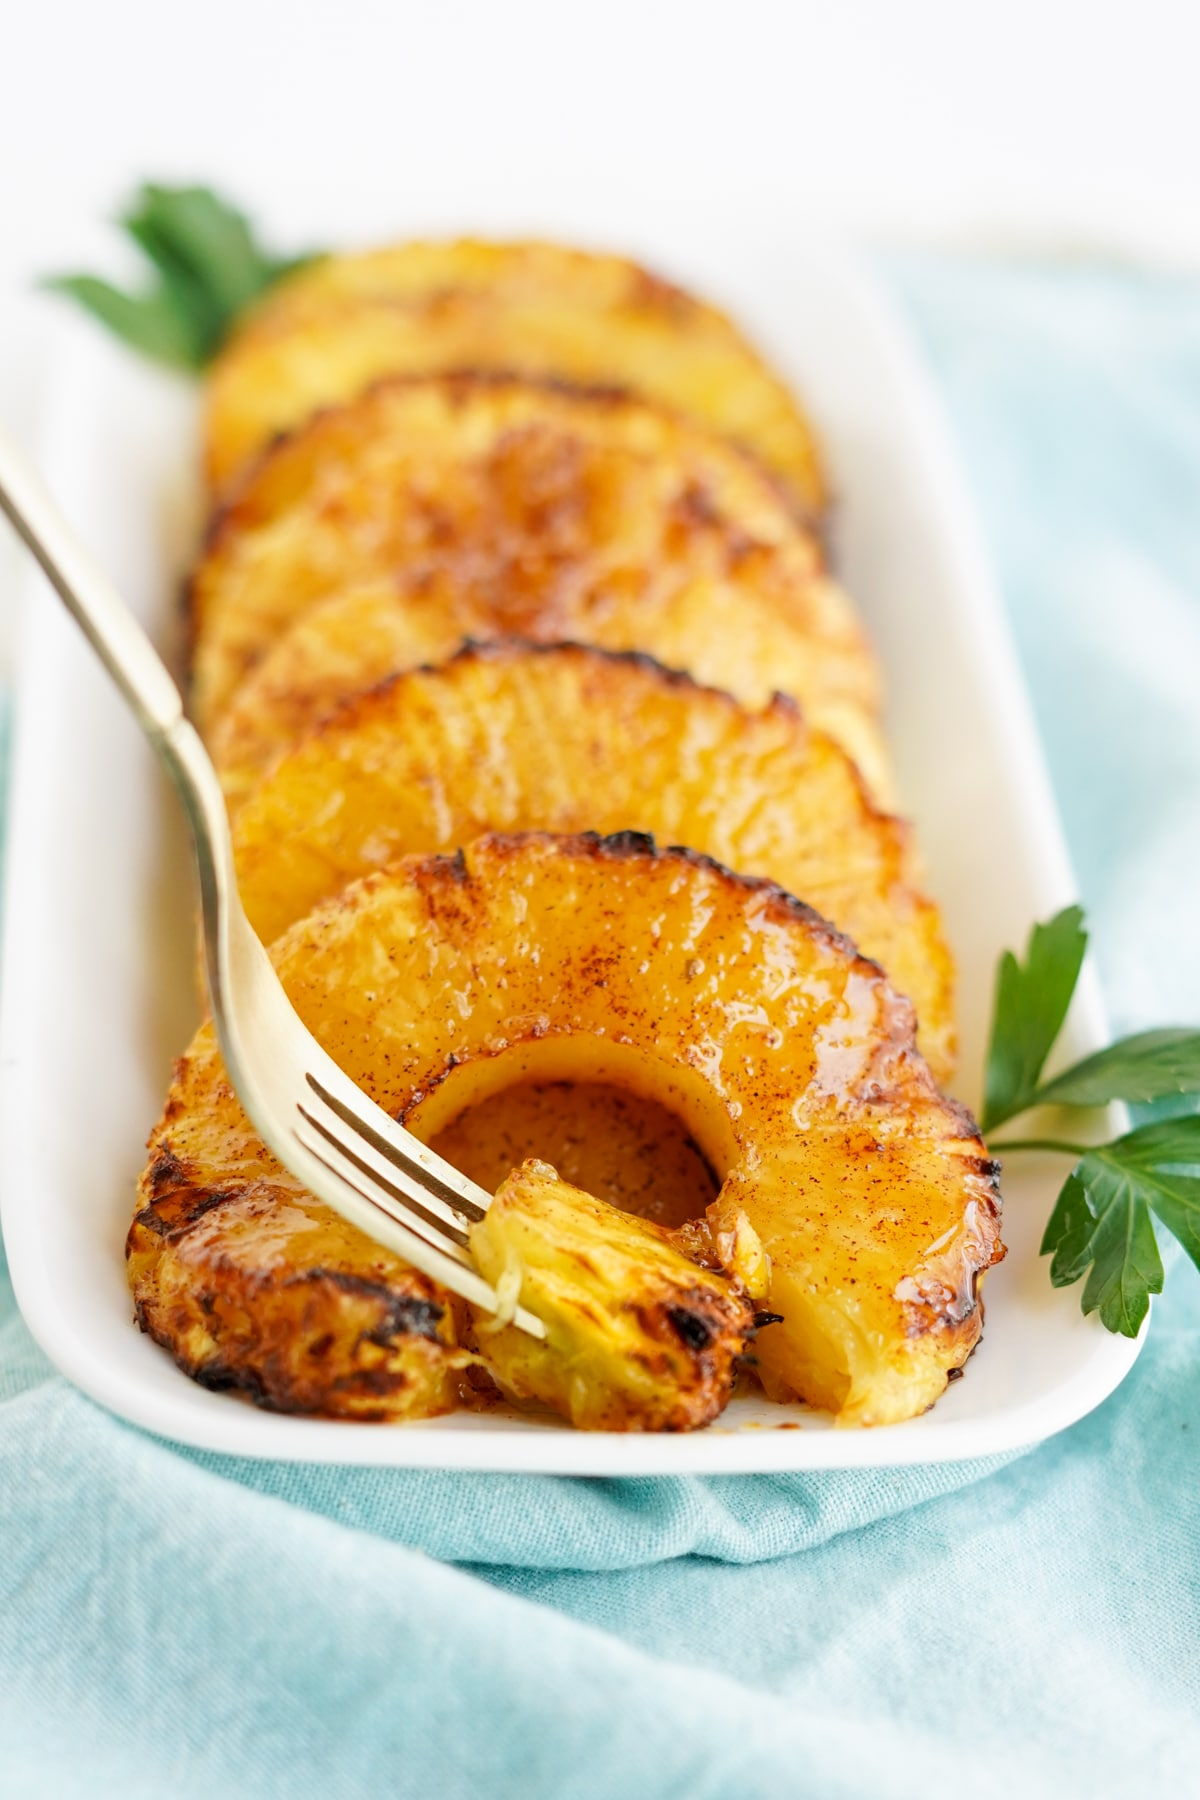 caramelized pineapple rings on white platter with fork